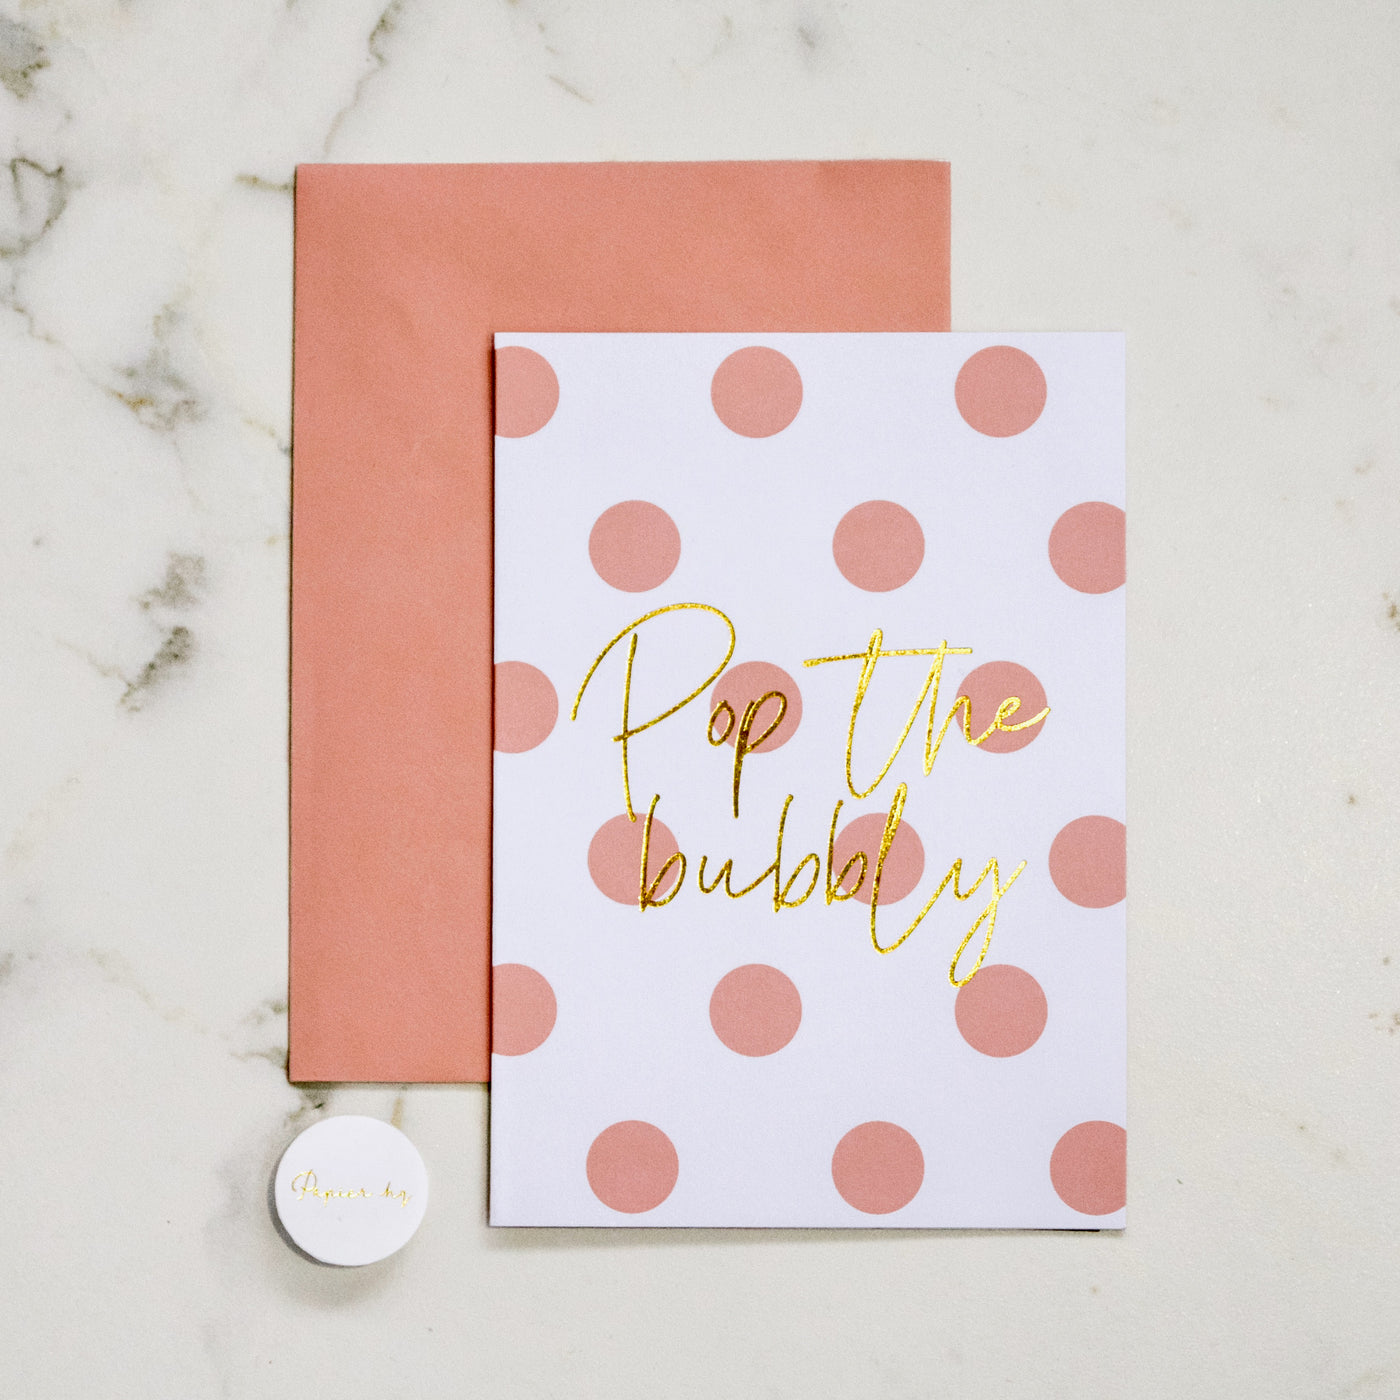 POP THE BUBBLY GREETING CARD